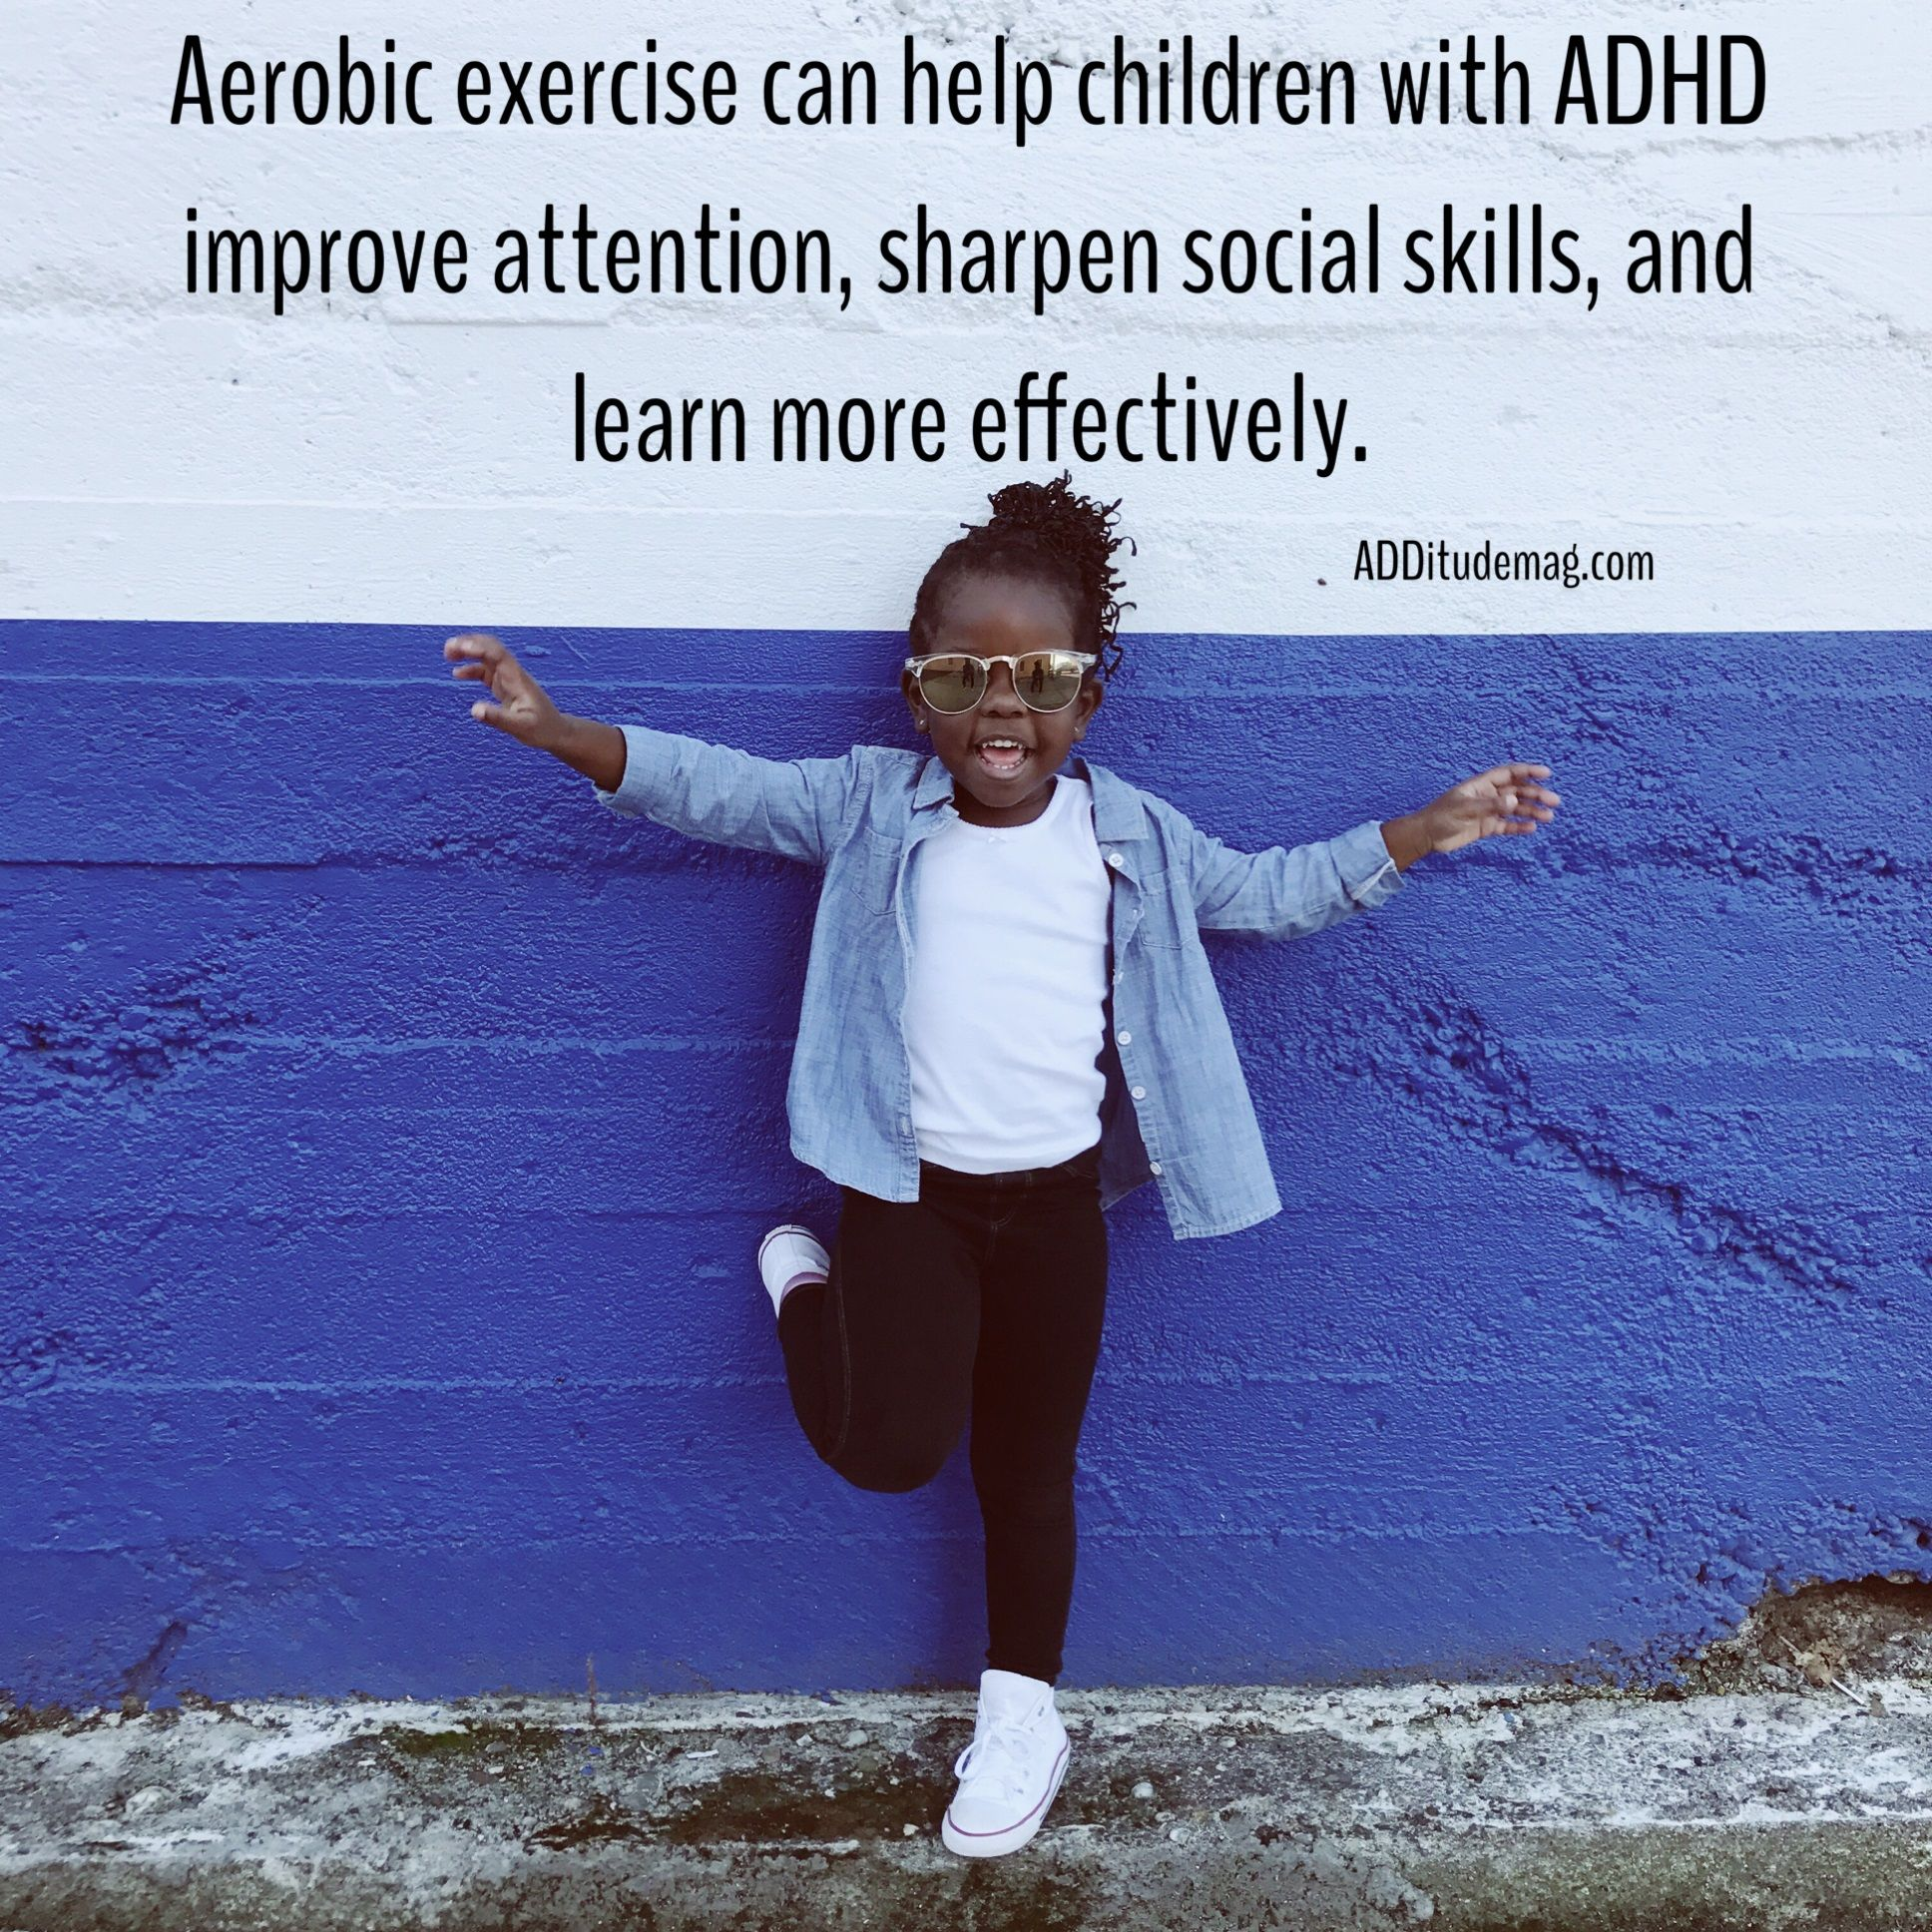 Sleep And Adhd Whats Connection >> Daily Exercise Ideas That Build Focus Adhd Friendly Sports And